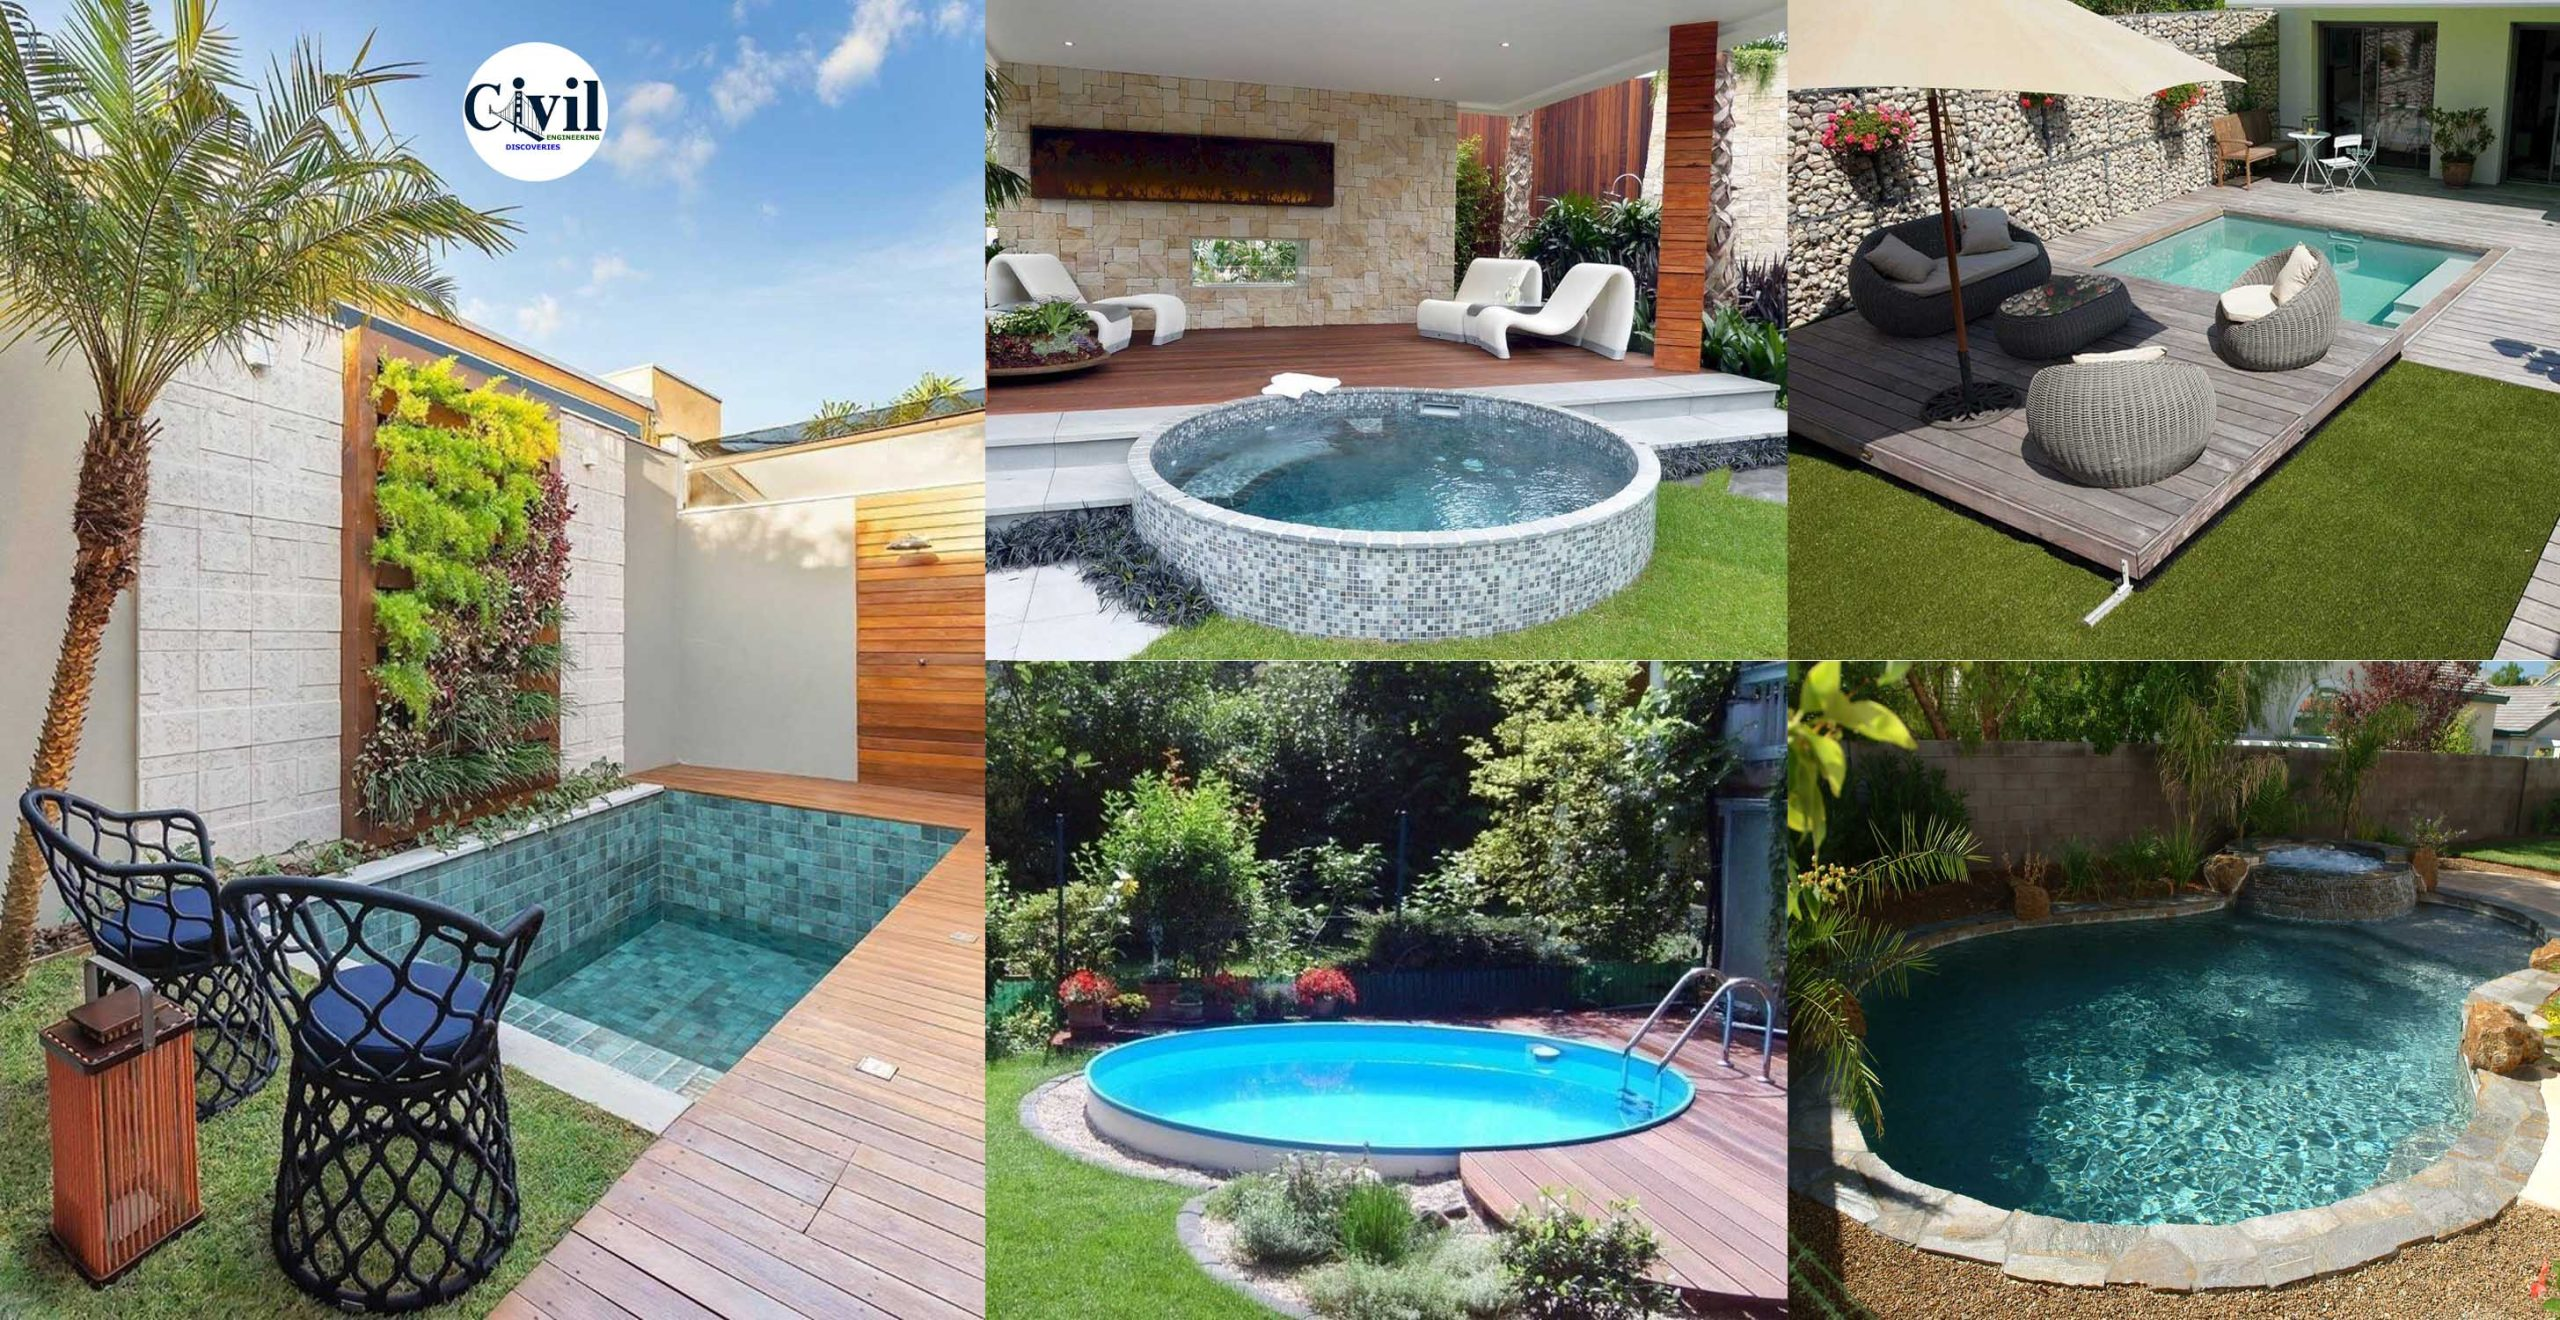 20 Lovely Small Swimming Pool Design Ideas To Get Natural Accent ...